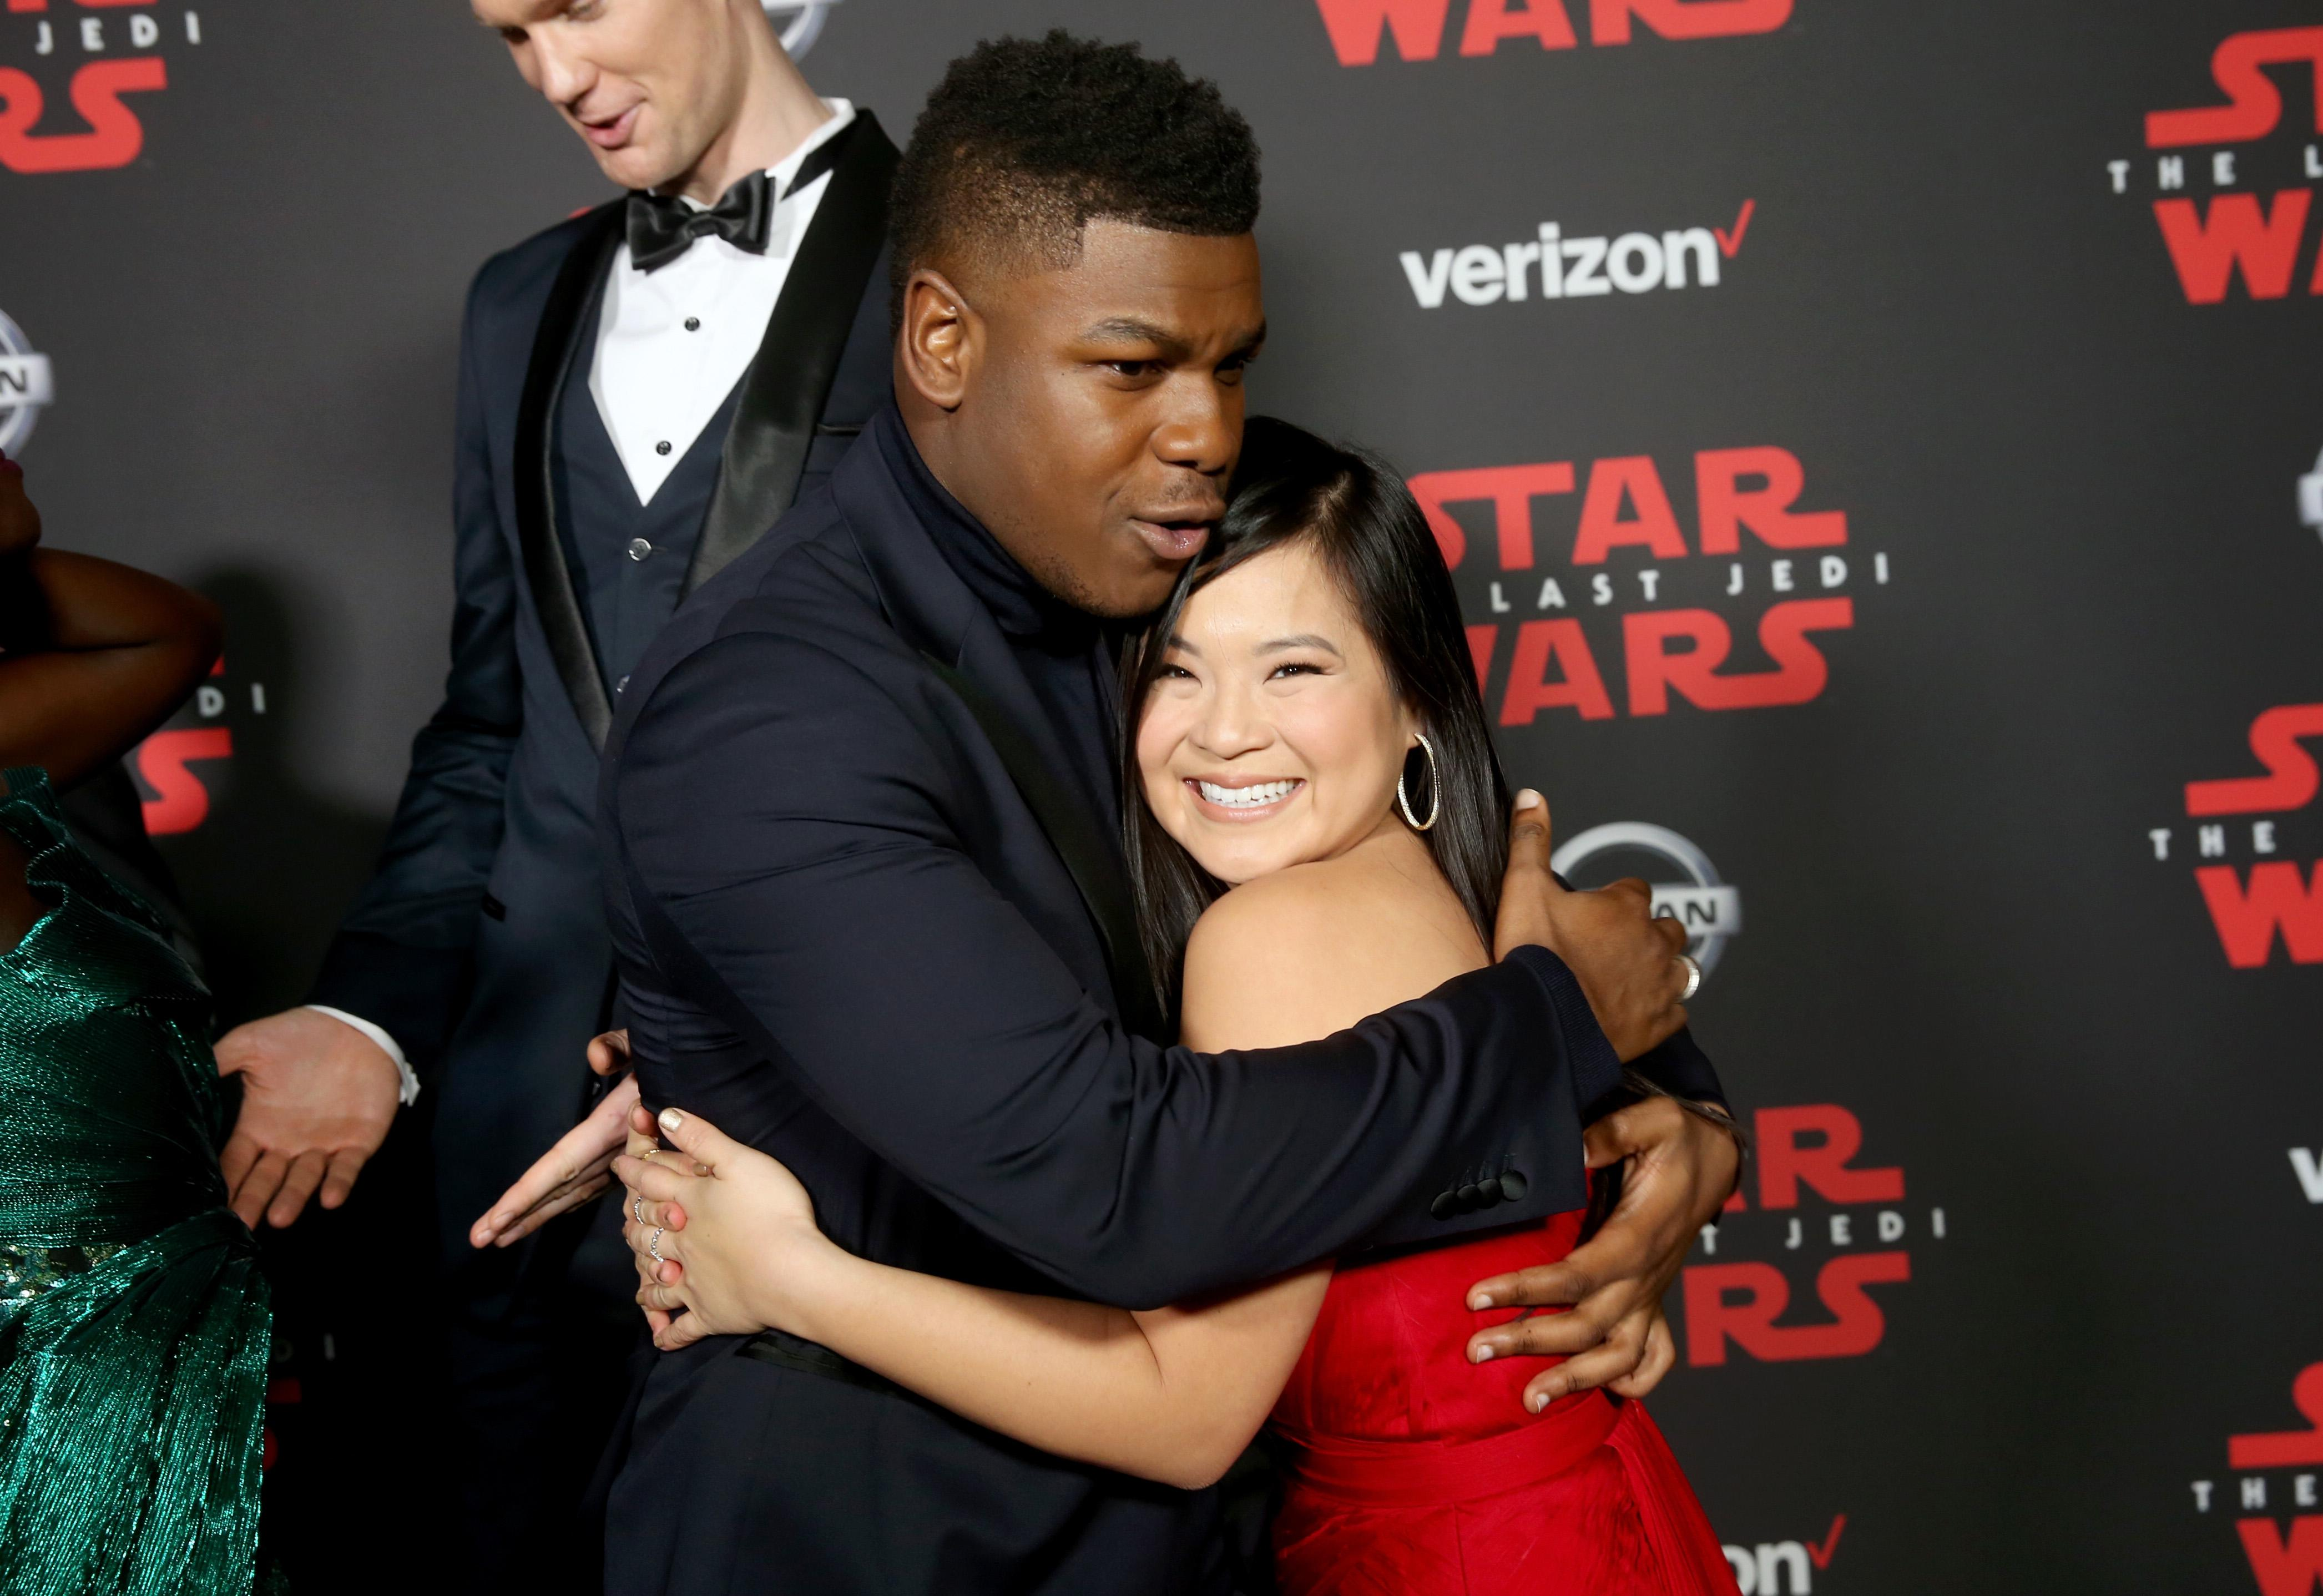 John Boyega apologises for 'badly worded' comments about dealing with 'Star Wars' trolls